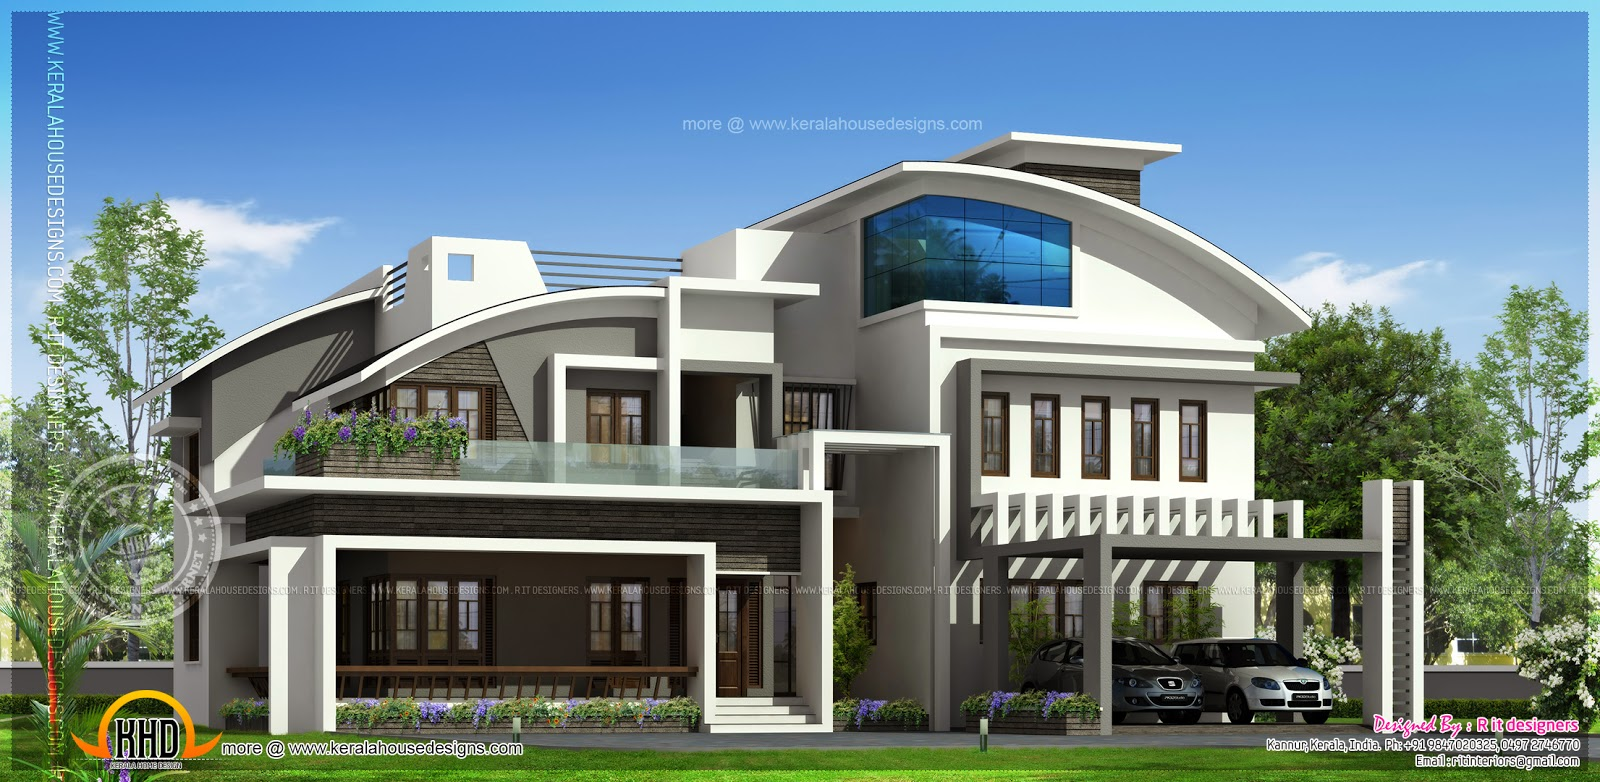 Contemporary luxury house elevation in 4280 square feet - Kerala home design  and floor plans - 8000+ houses